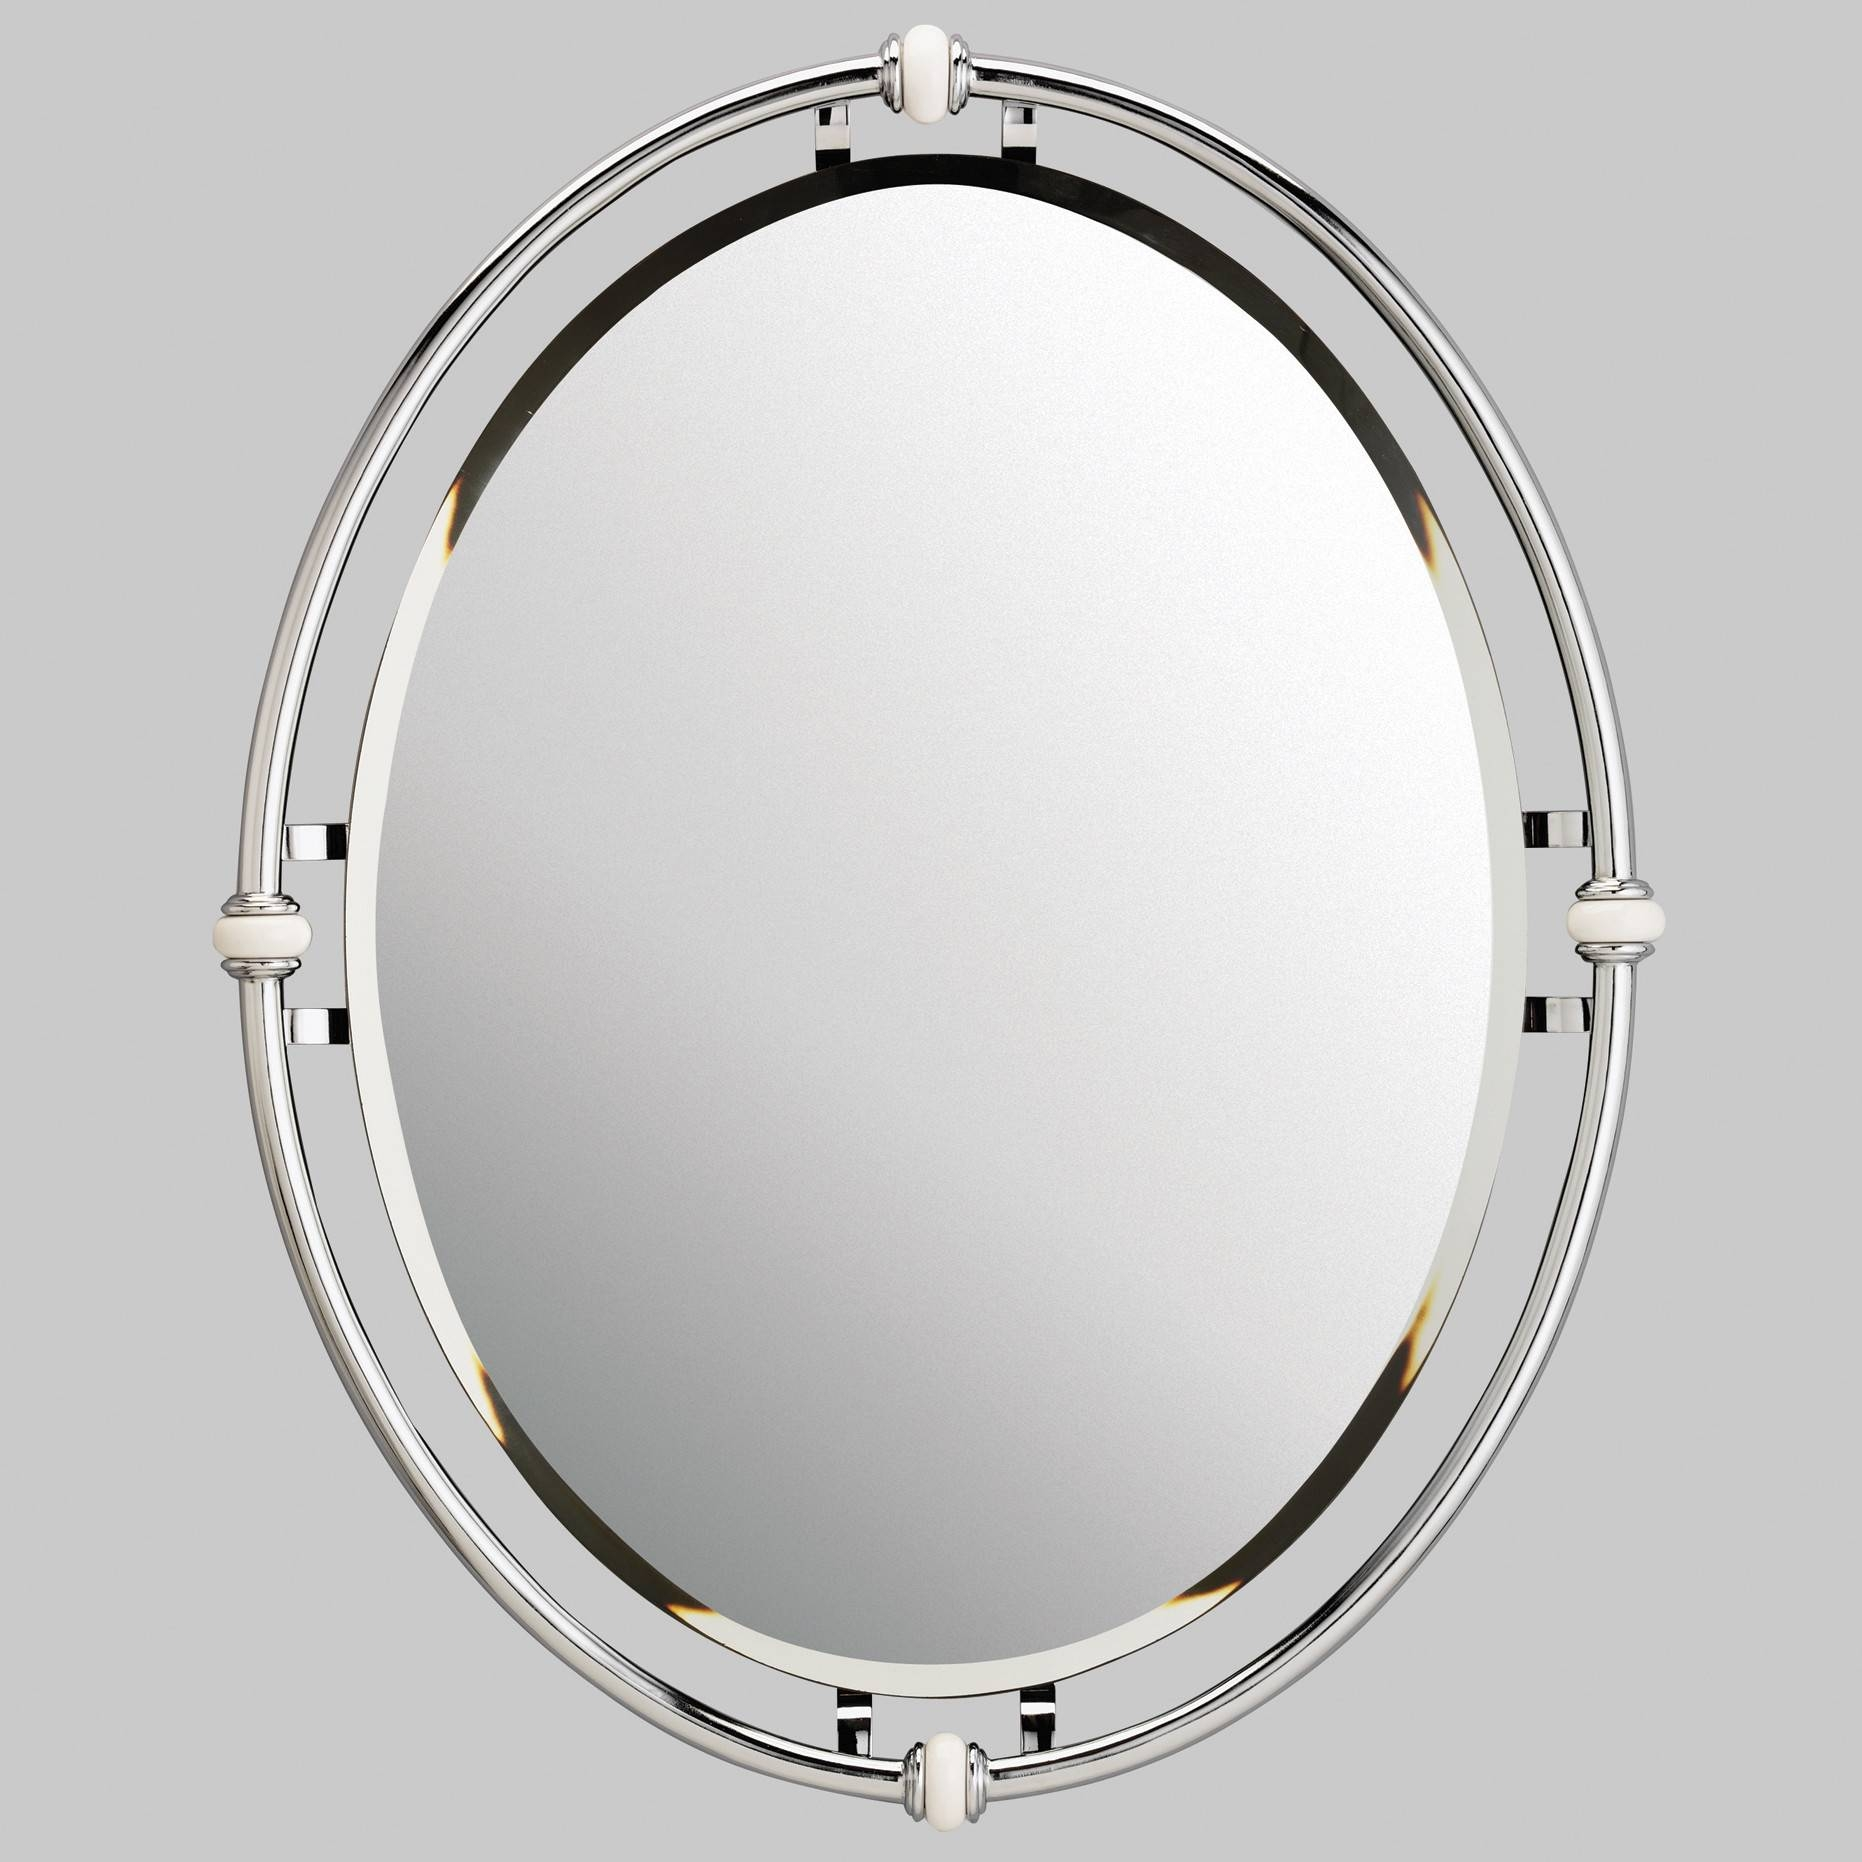 Extraordinary 70+ Wayfair Oval Bathroom Mirrors Inspiration Design For Bevelled Oval Mirrors (View 12 of 15)